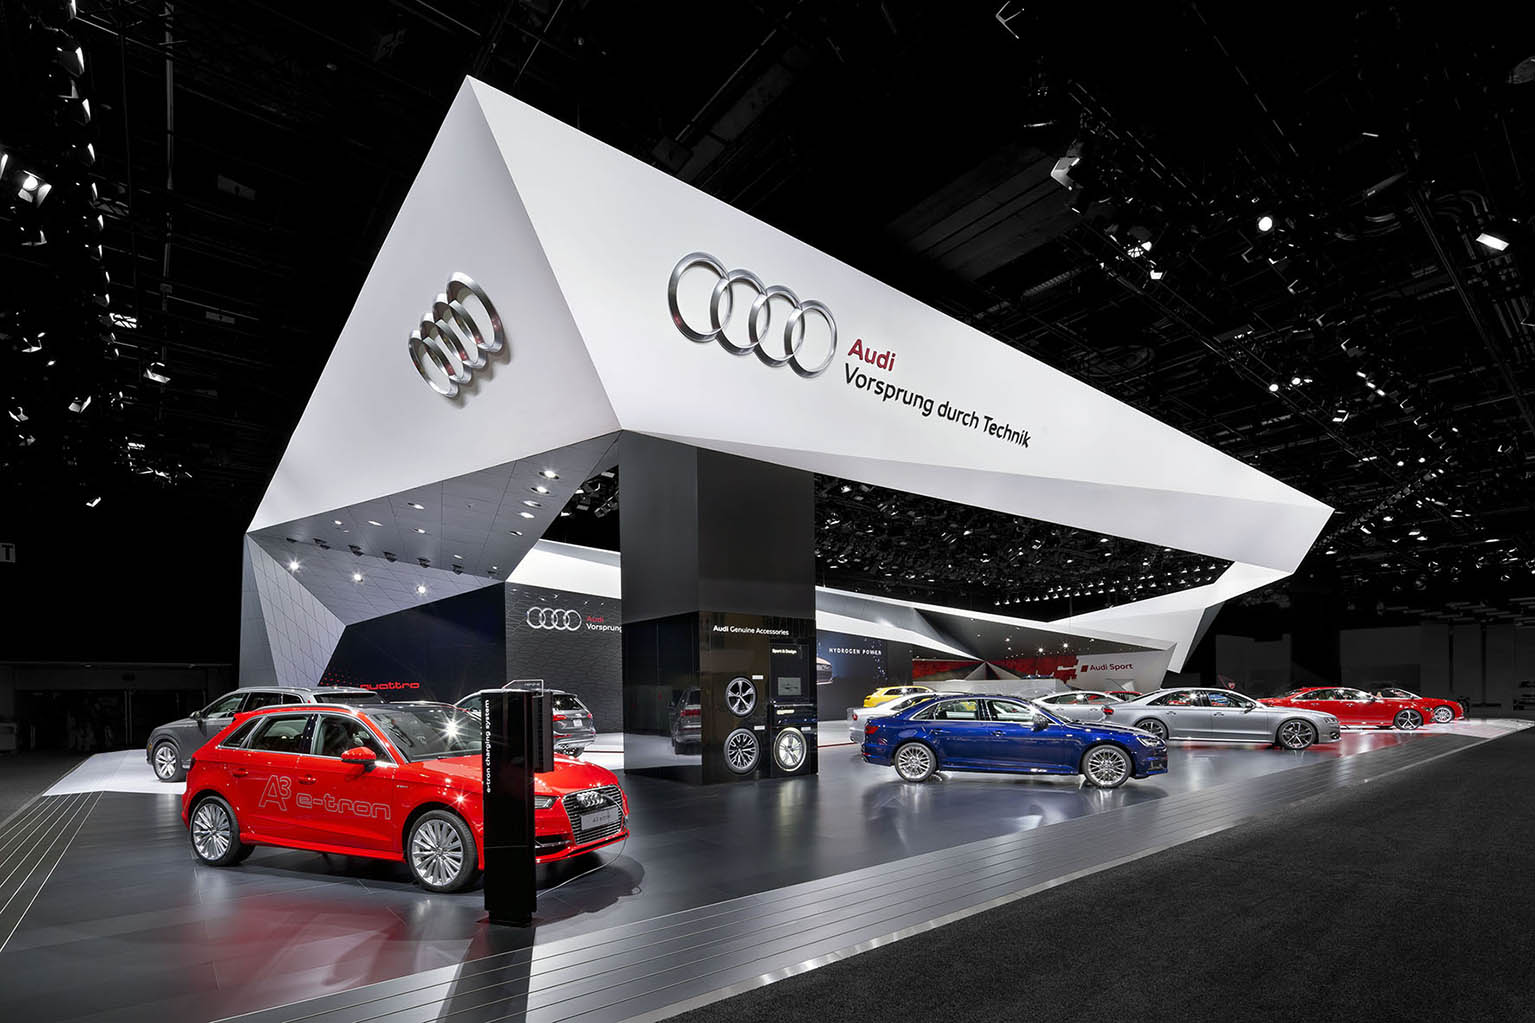 brand exhibition at CES Las Vegas and at NAIAS Detroit